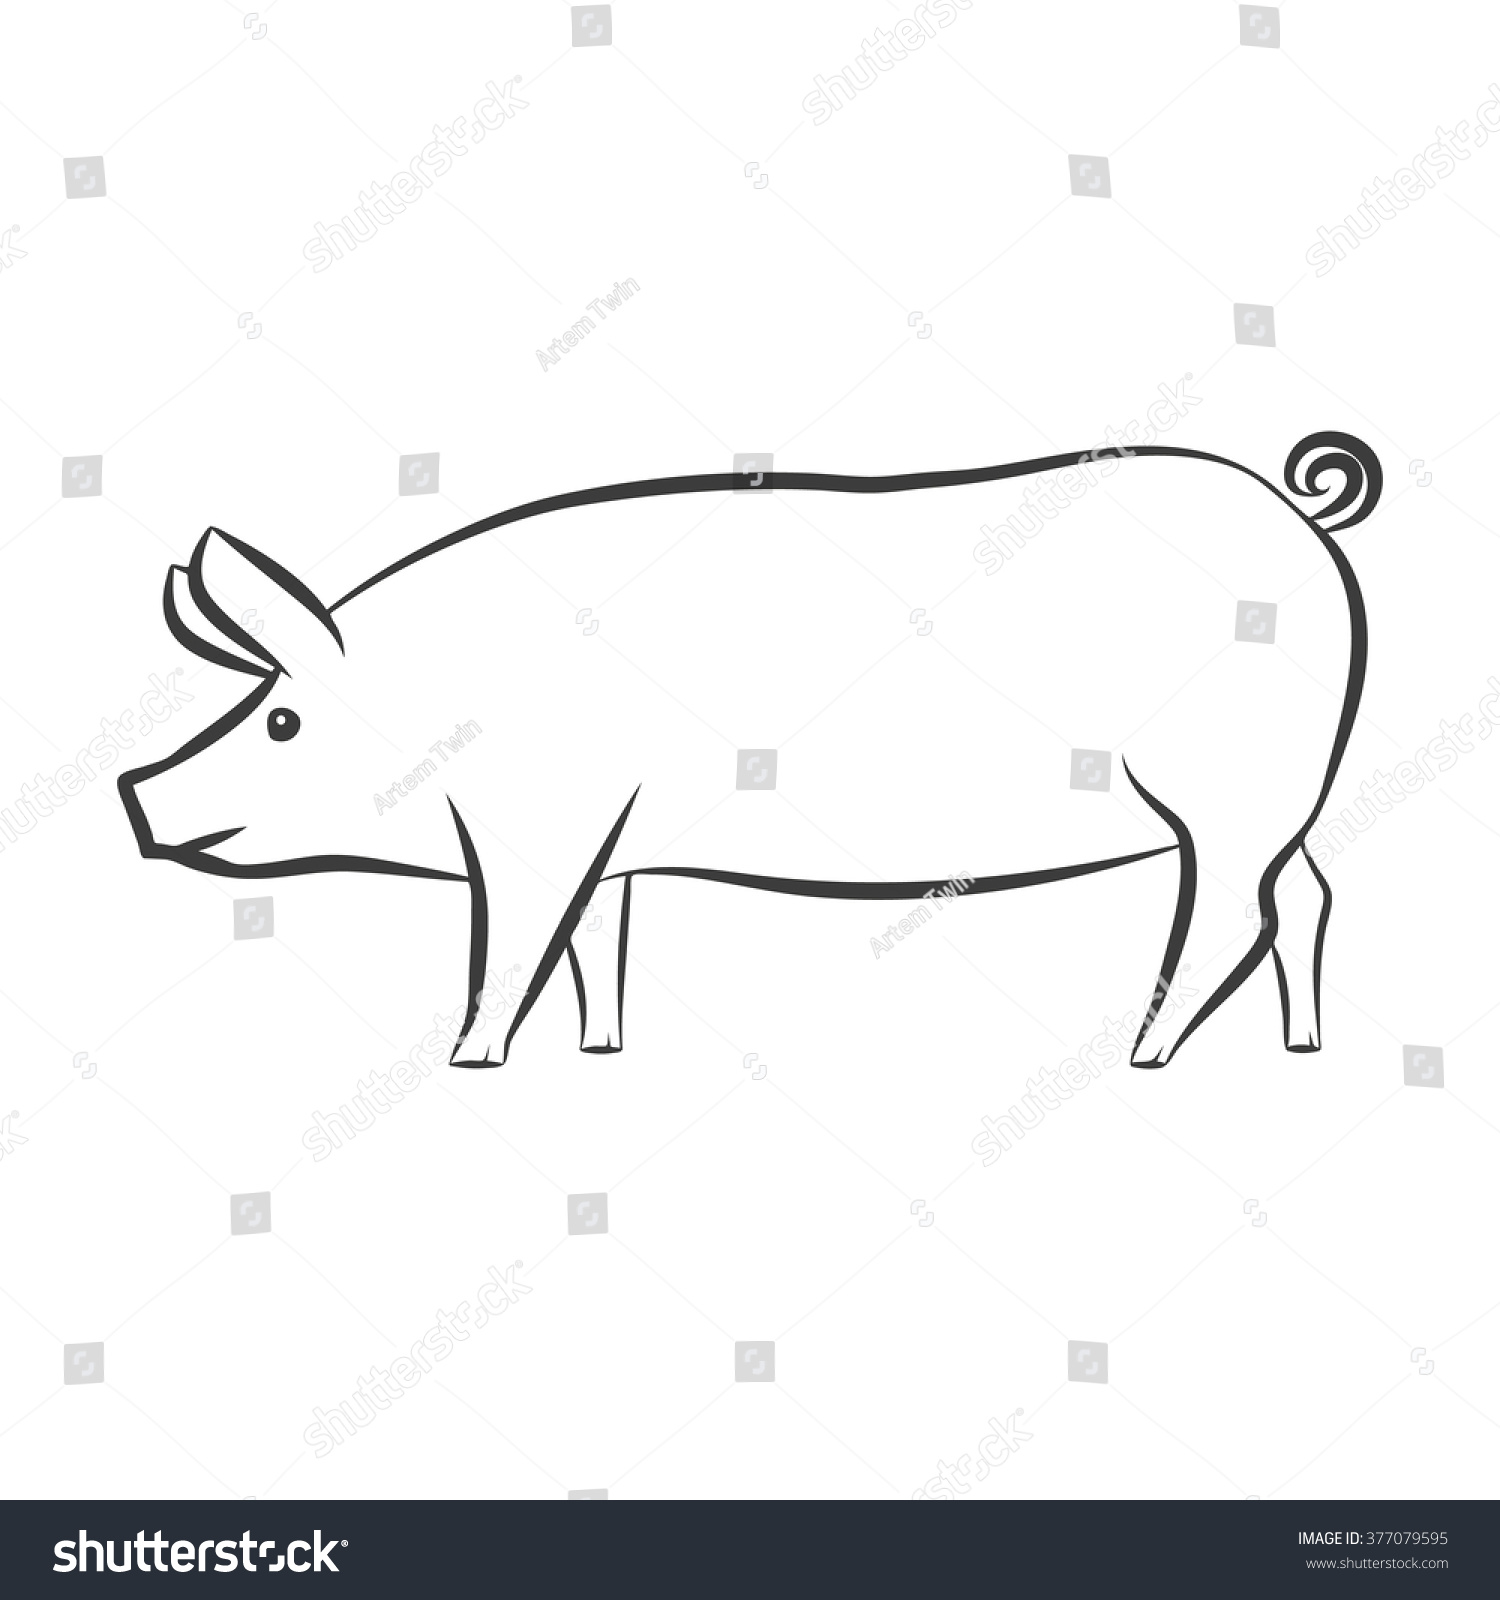 Contour Line Drawing Animal : Pig snout farm drawing animal vector stock